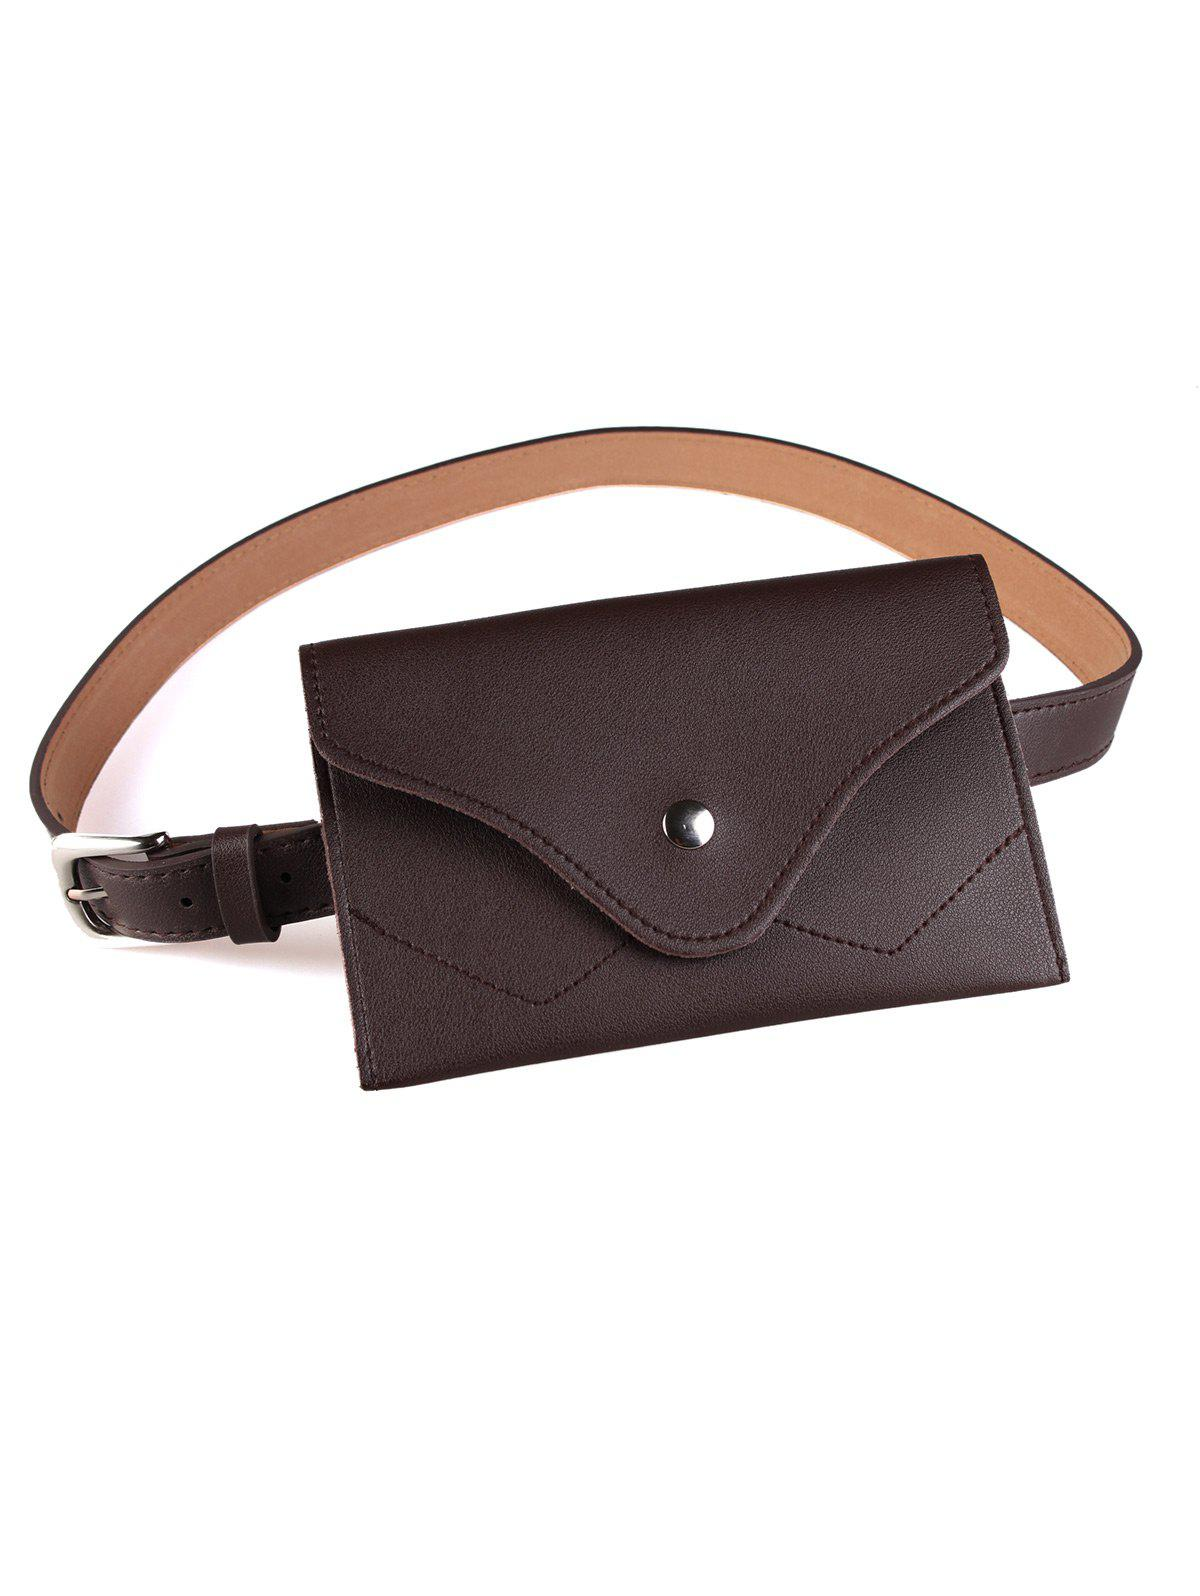 Removable Fanny Pack F